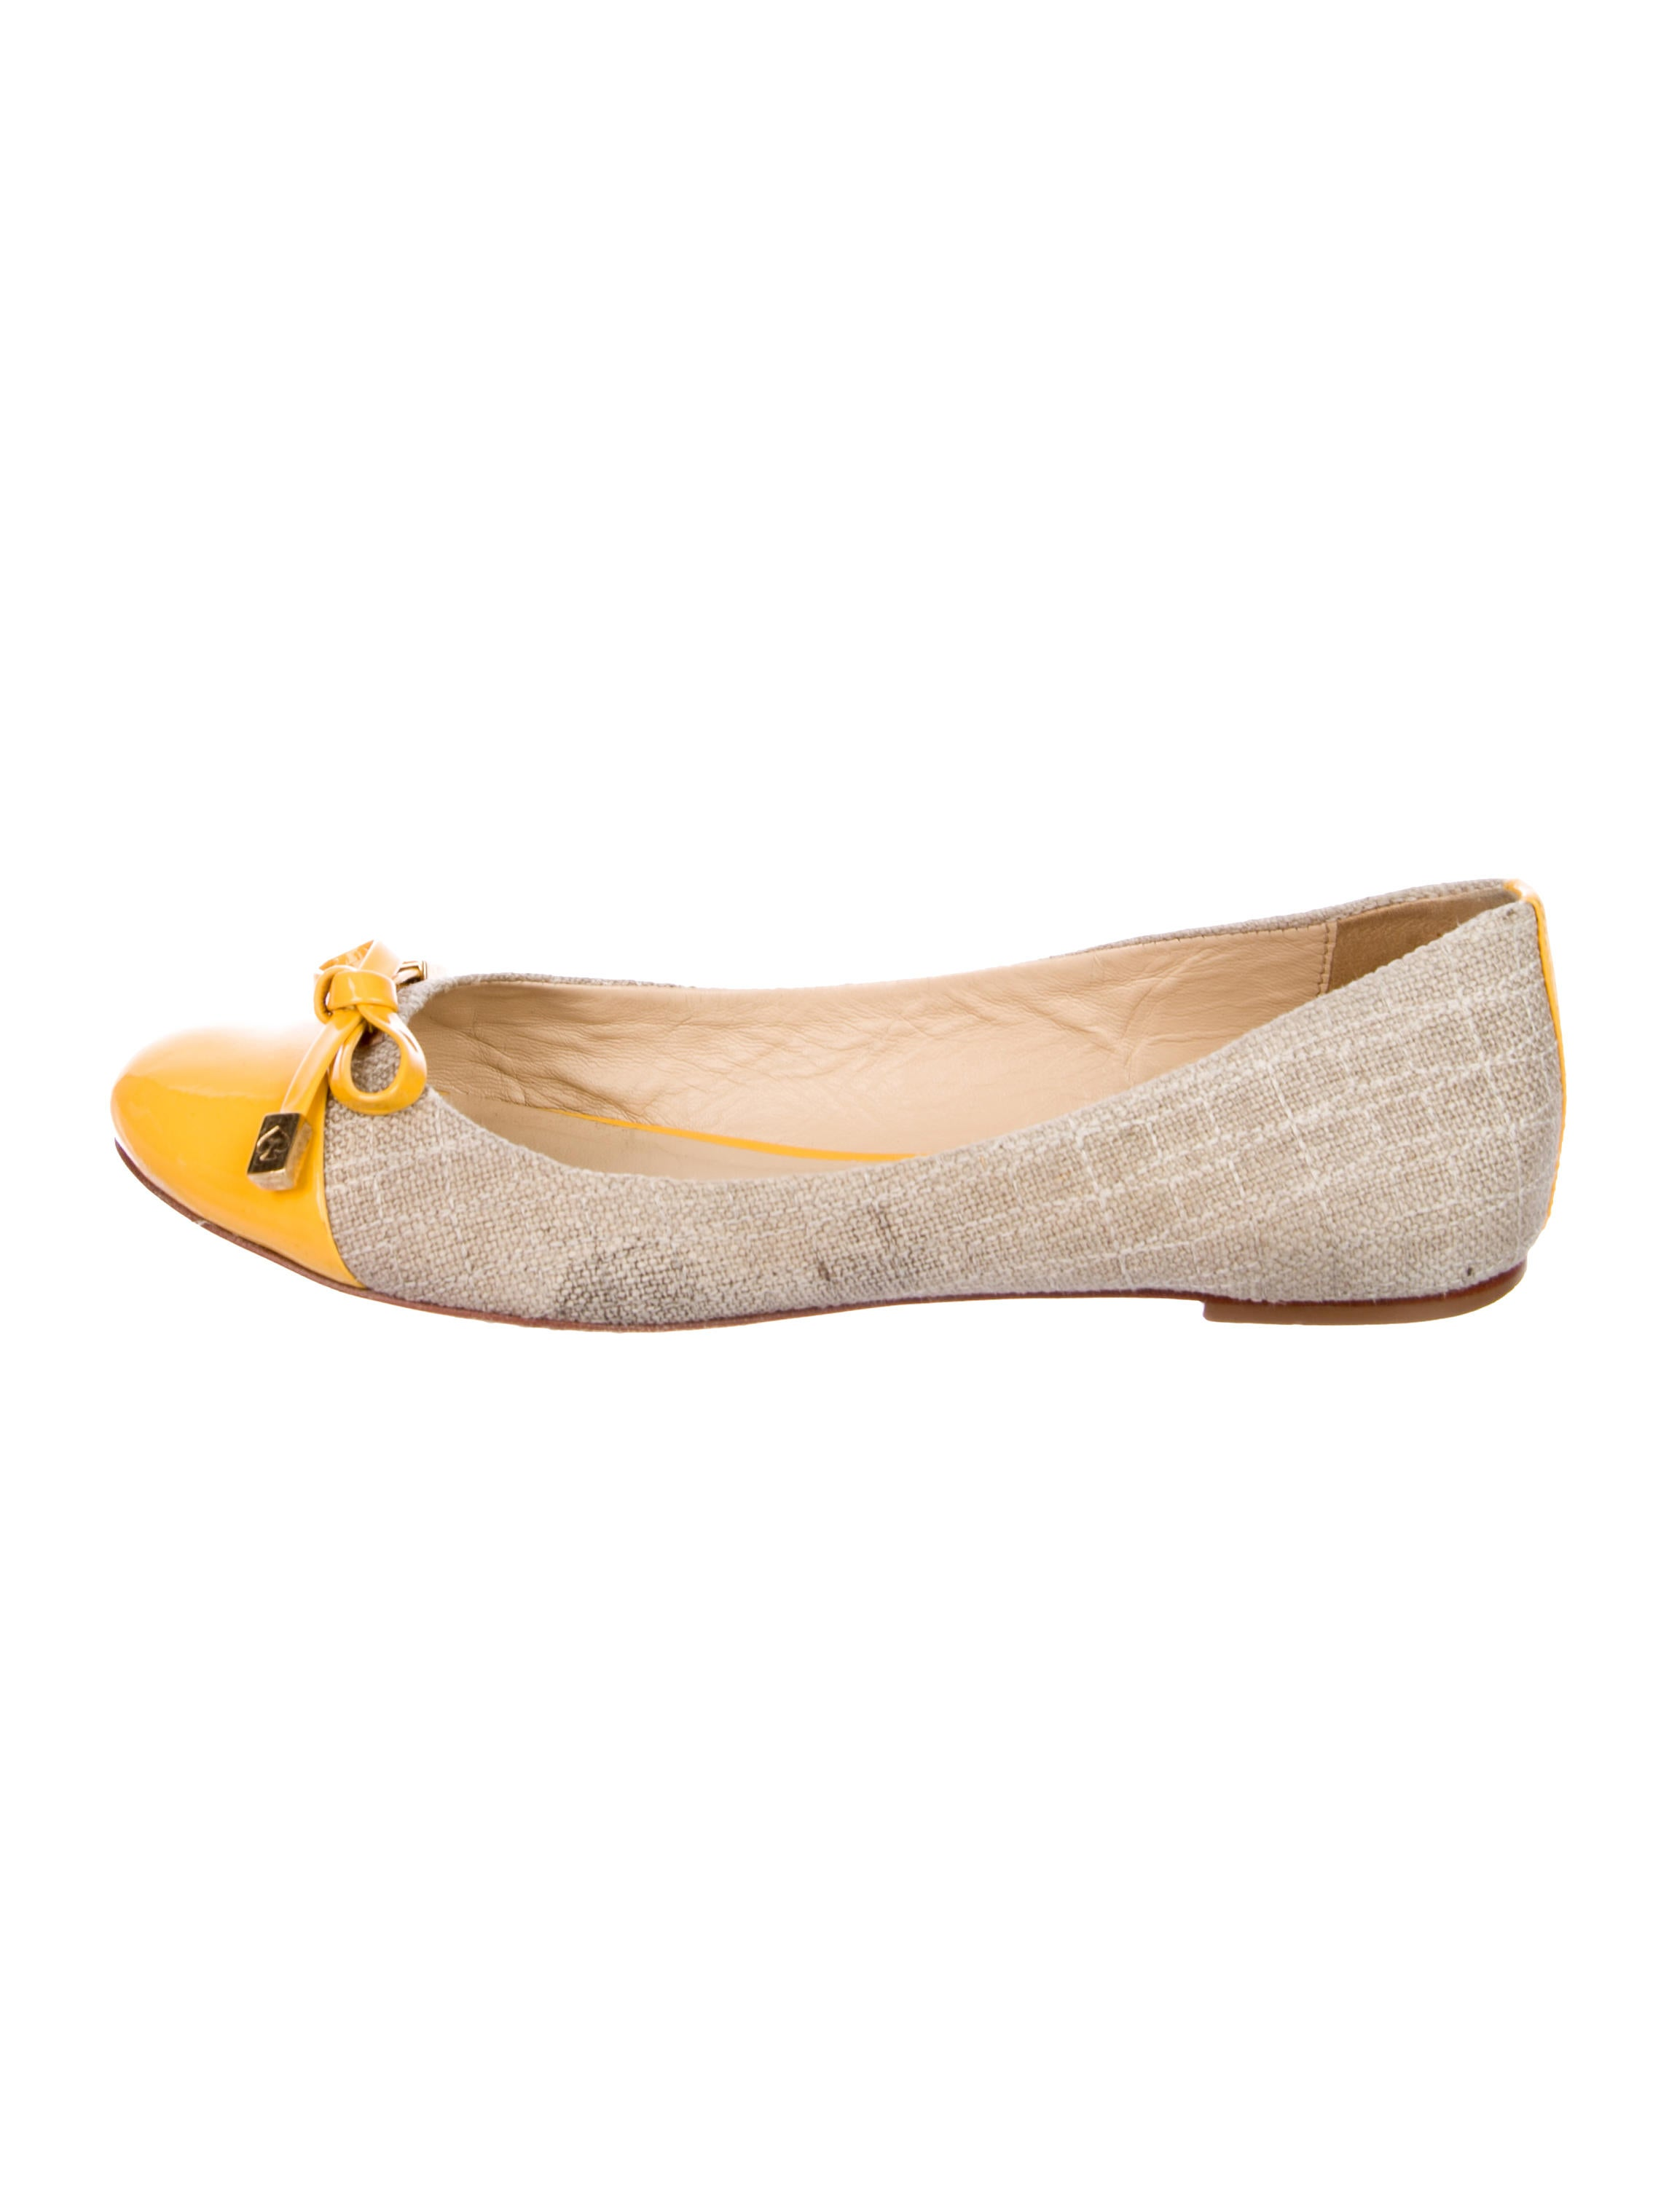 outlet choice original online Kate Spade New York Heather Ballet Flats MzLlbYvG